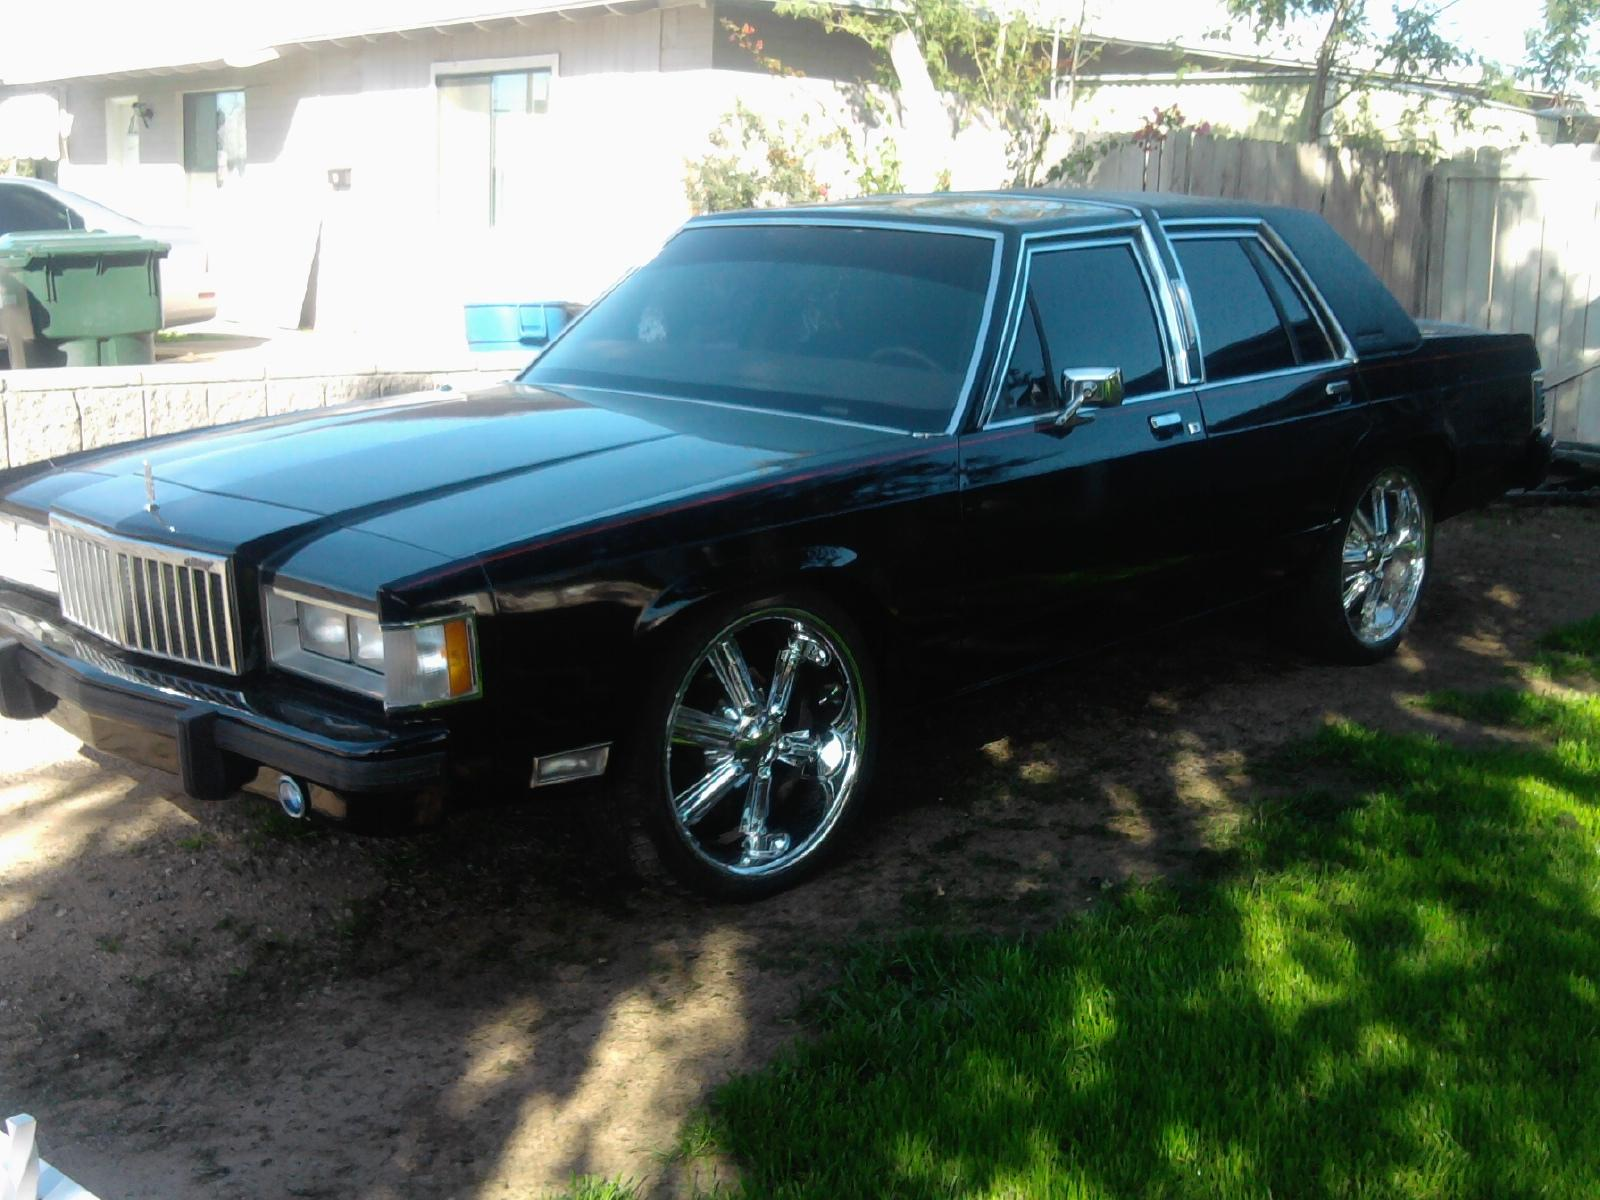 Large furthermore Mercury Grand Marquis Pic also Mercury Lynx in addition Original as well . on 1987 mercury grand marquis